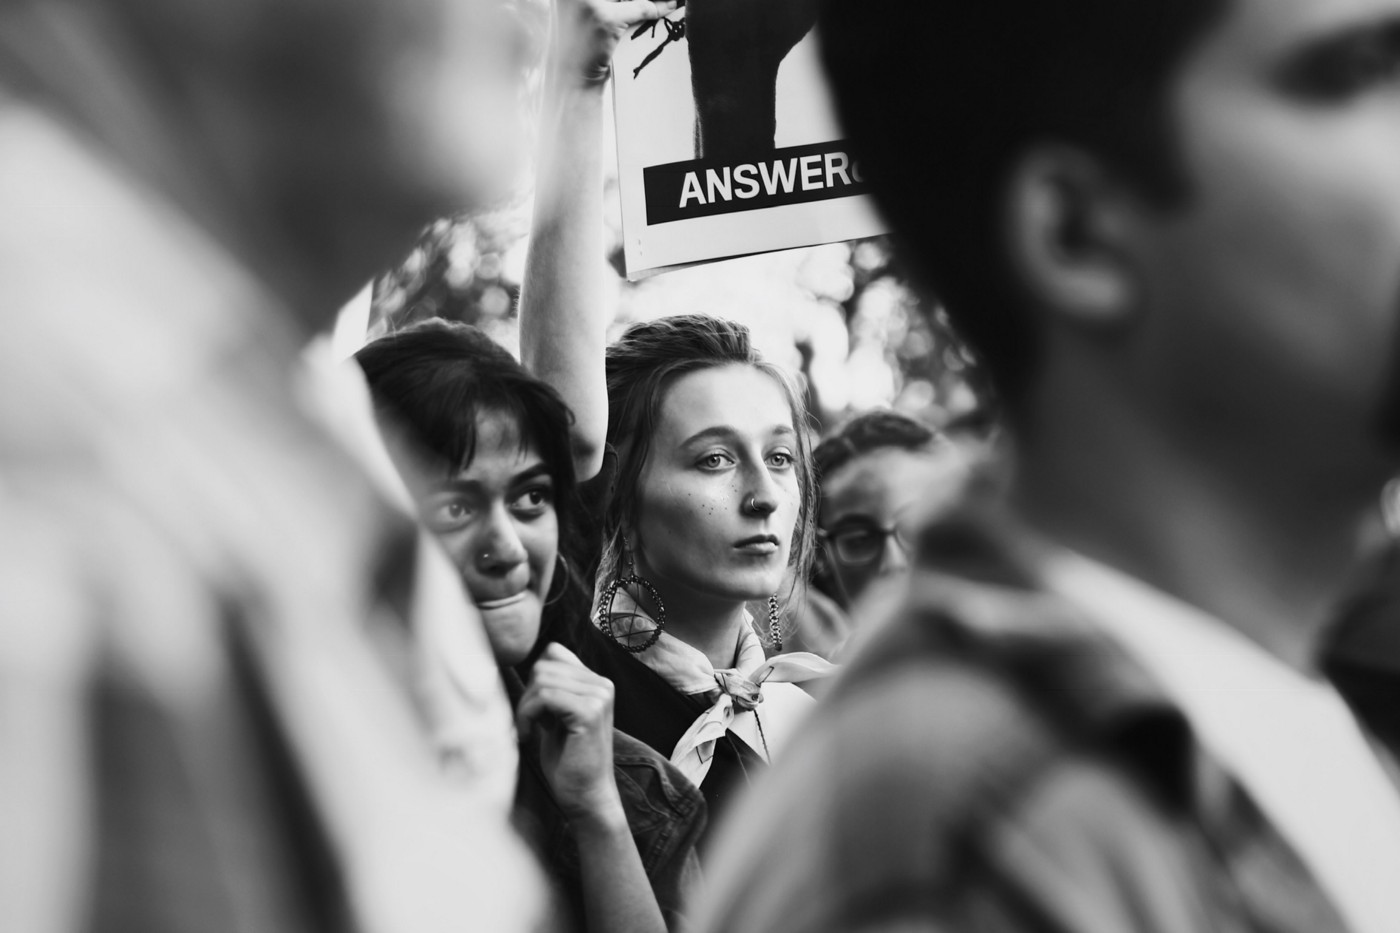 Anti-racist white student at protest against hate speech at the University of a Southern California. Photo Credit: @hfdavis